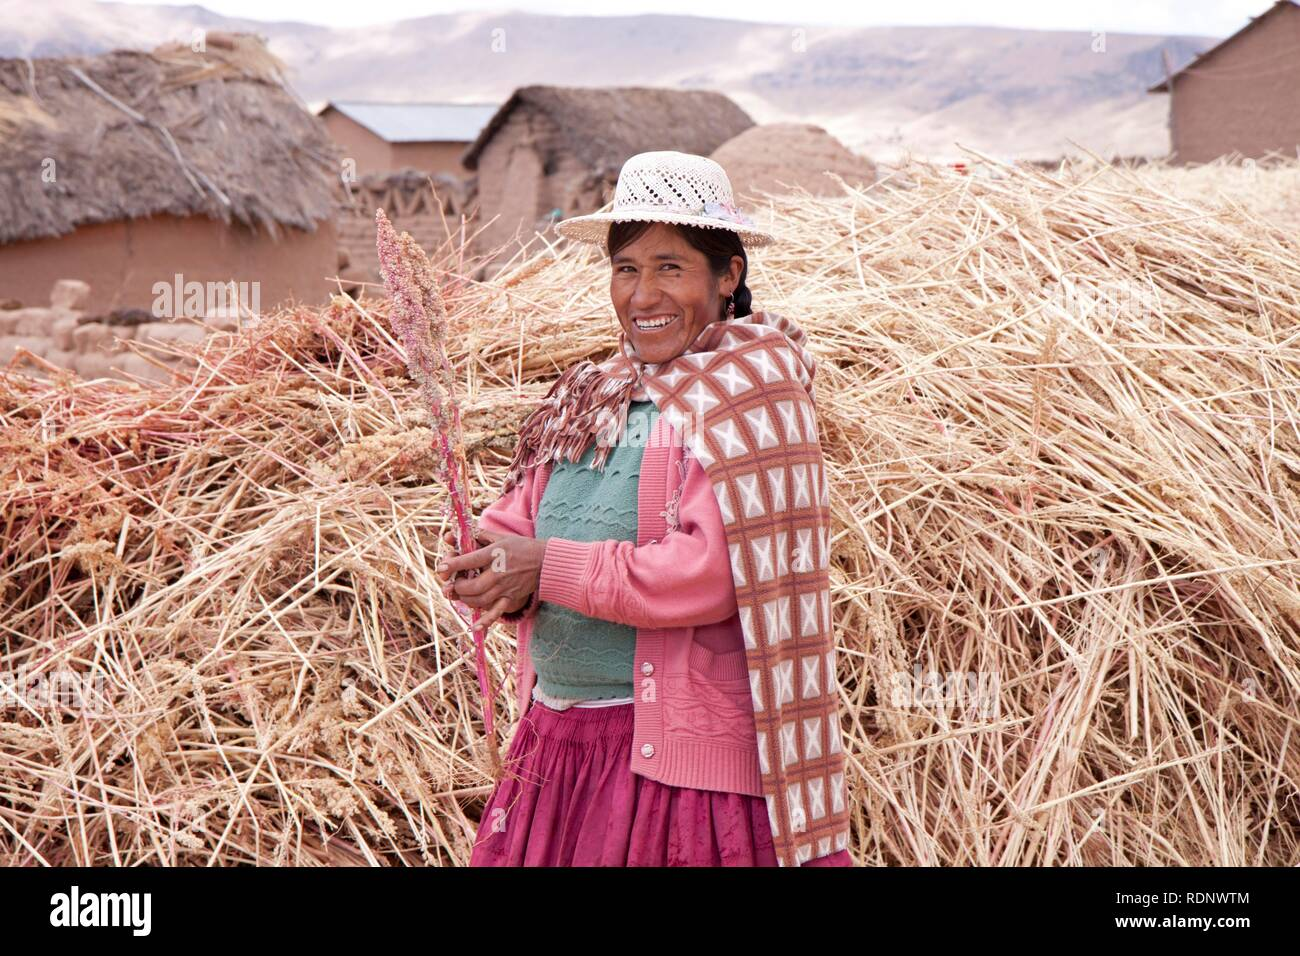 Traditionally dressed woman on a farm in July, Puno, Peru, South America - Stock Image